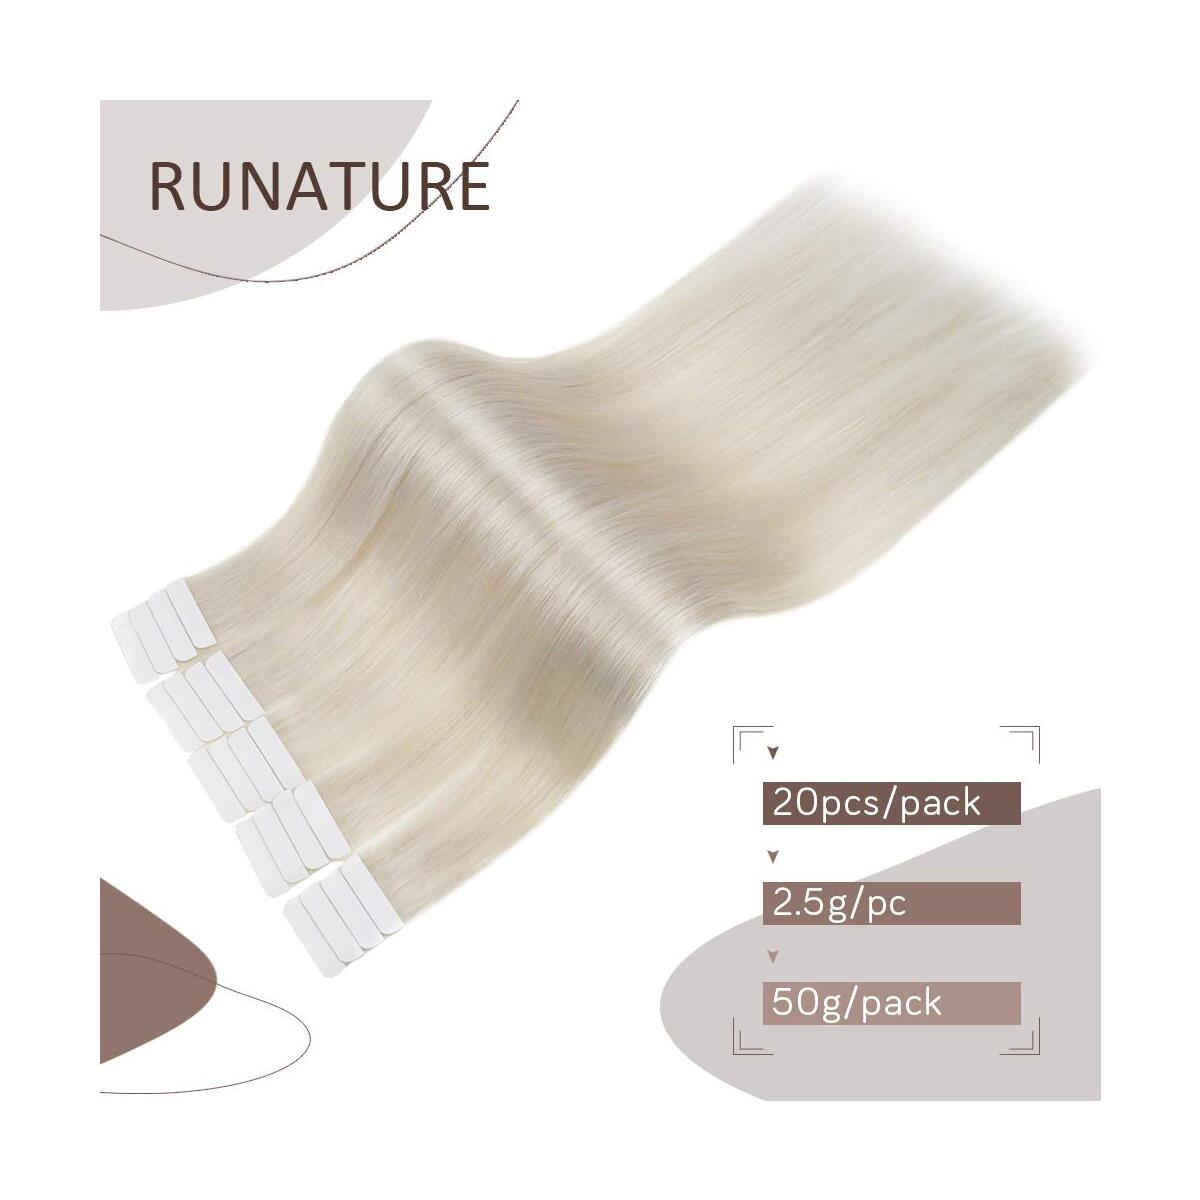 RUNATURE Tape in Hair Extensions 16inches Color 800 White Blonde 50g (2.5g Per Piece, 20 Pieces) Seamless Real Human Hair for Gift